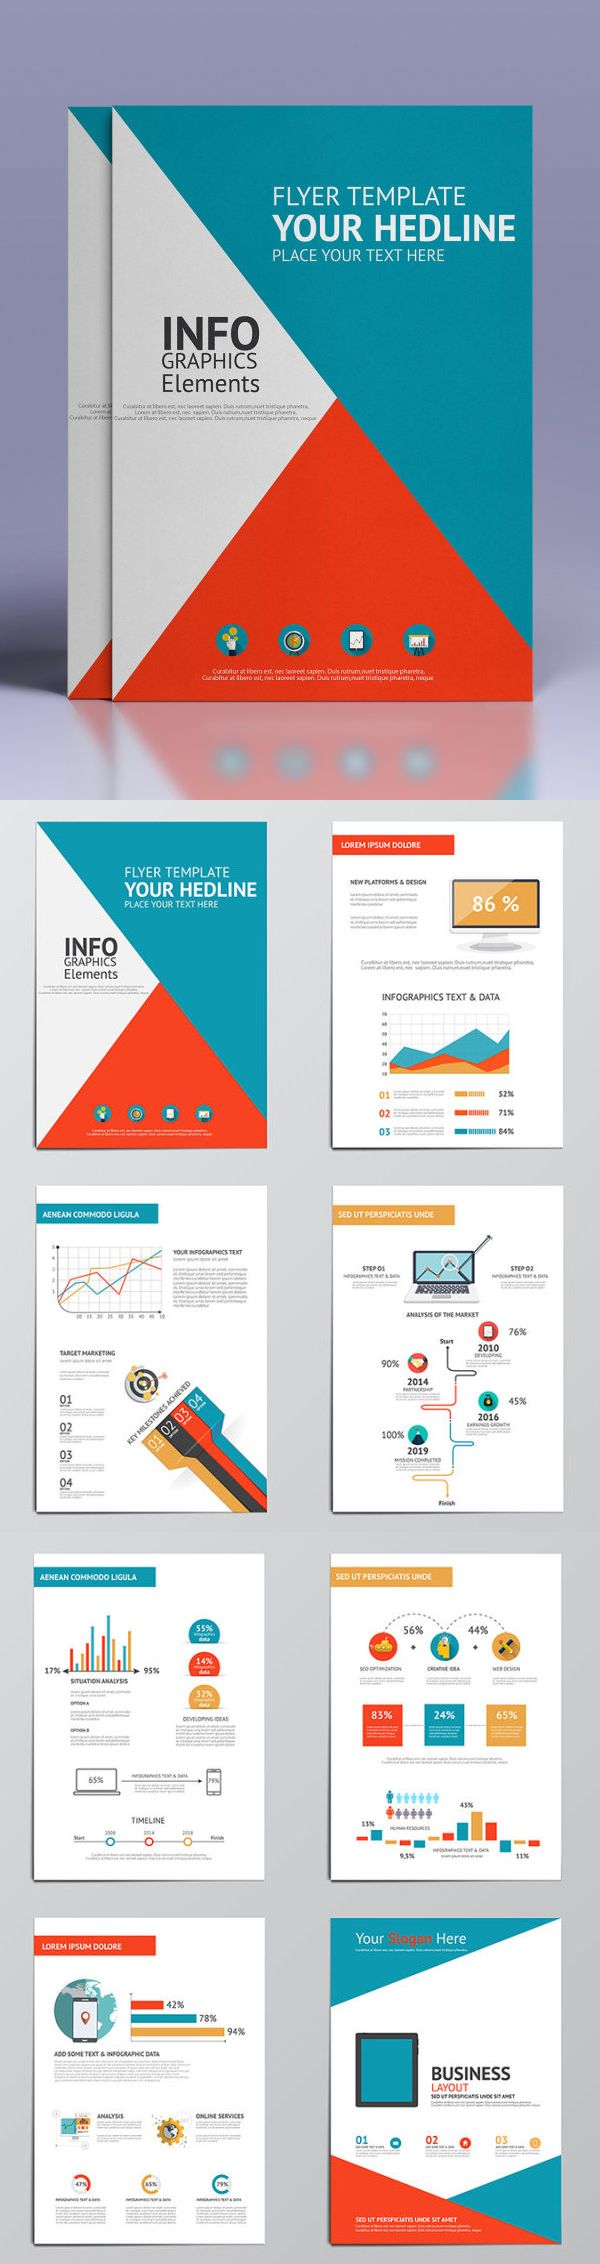 Business Infographics Elements For Brochures - Template Vector AI, EPS